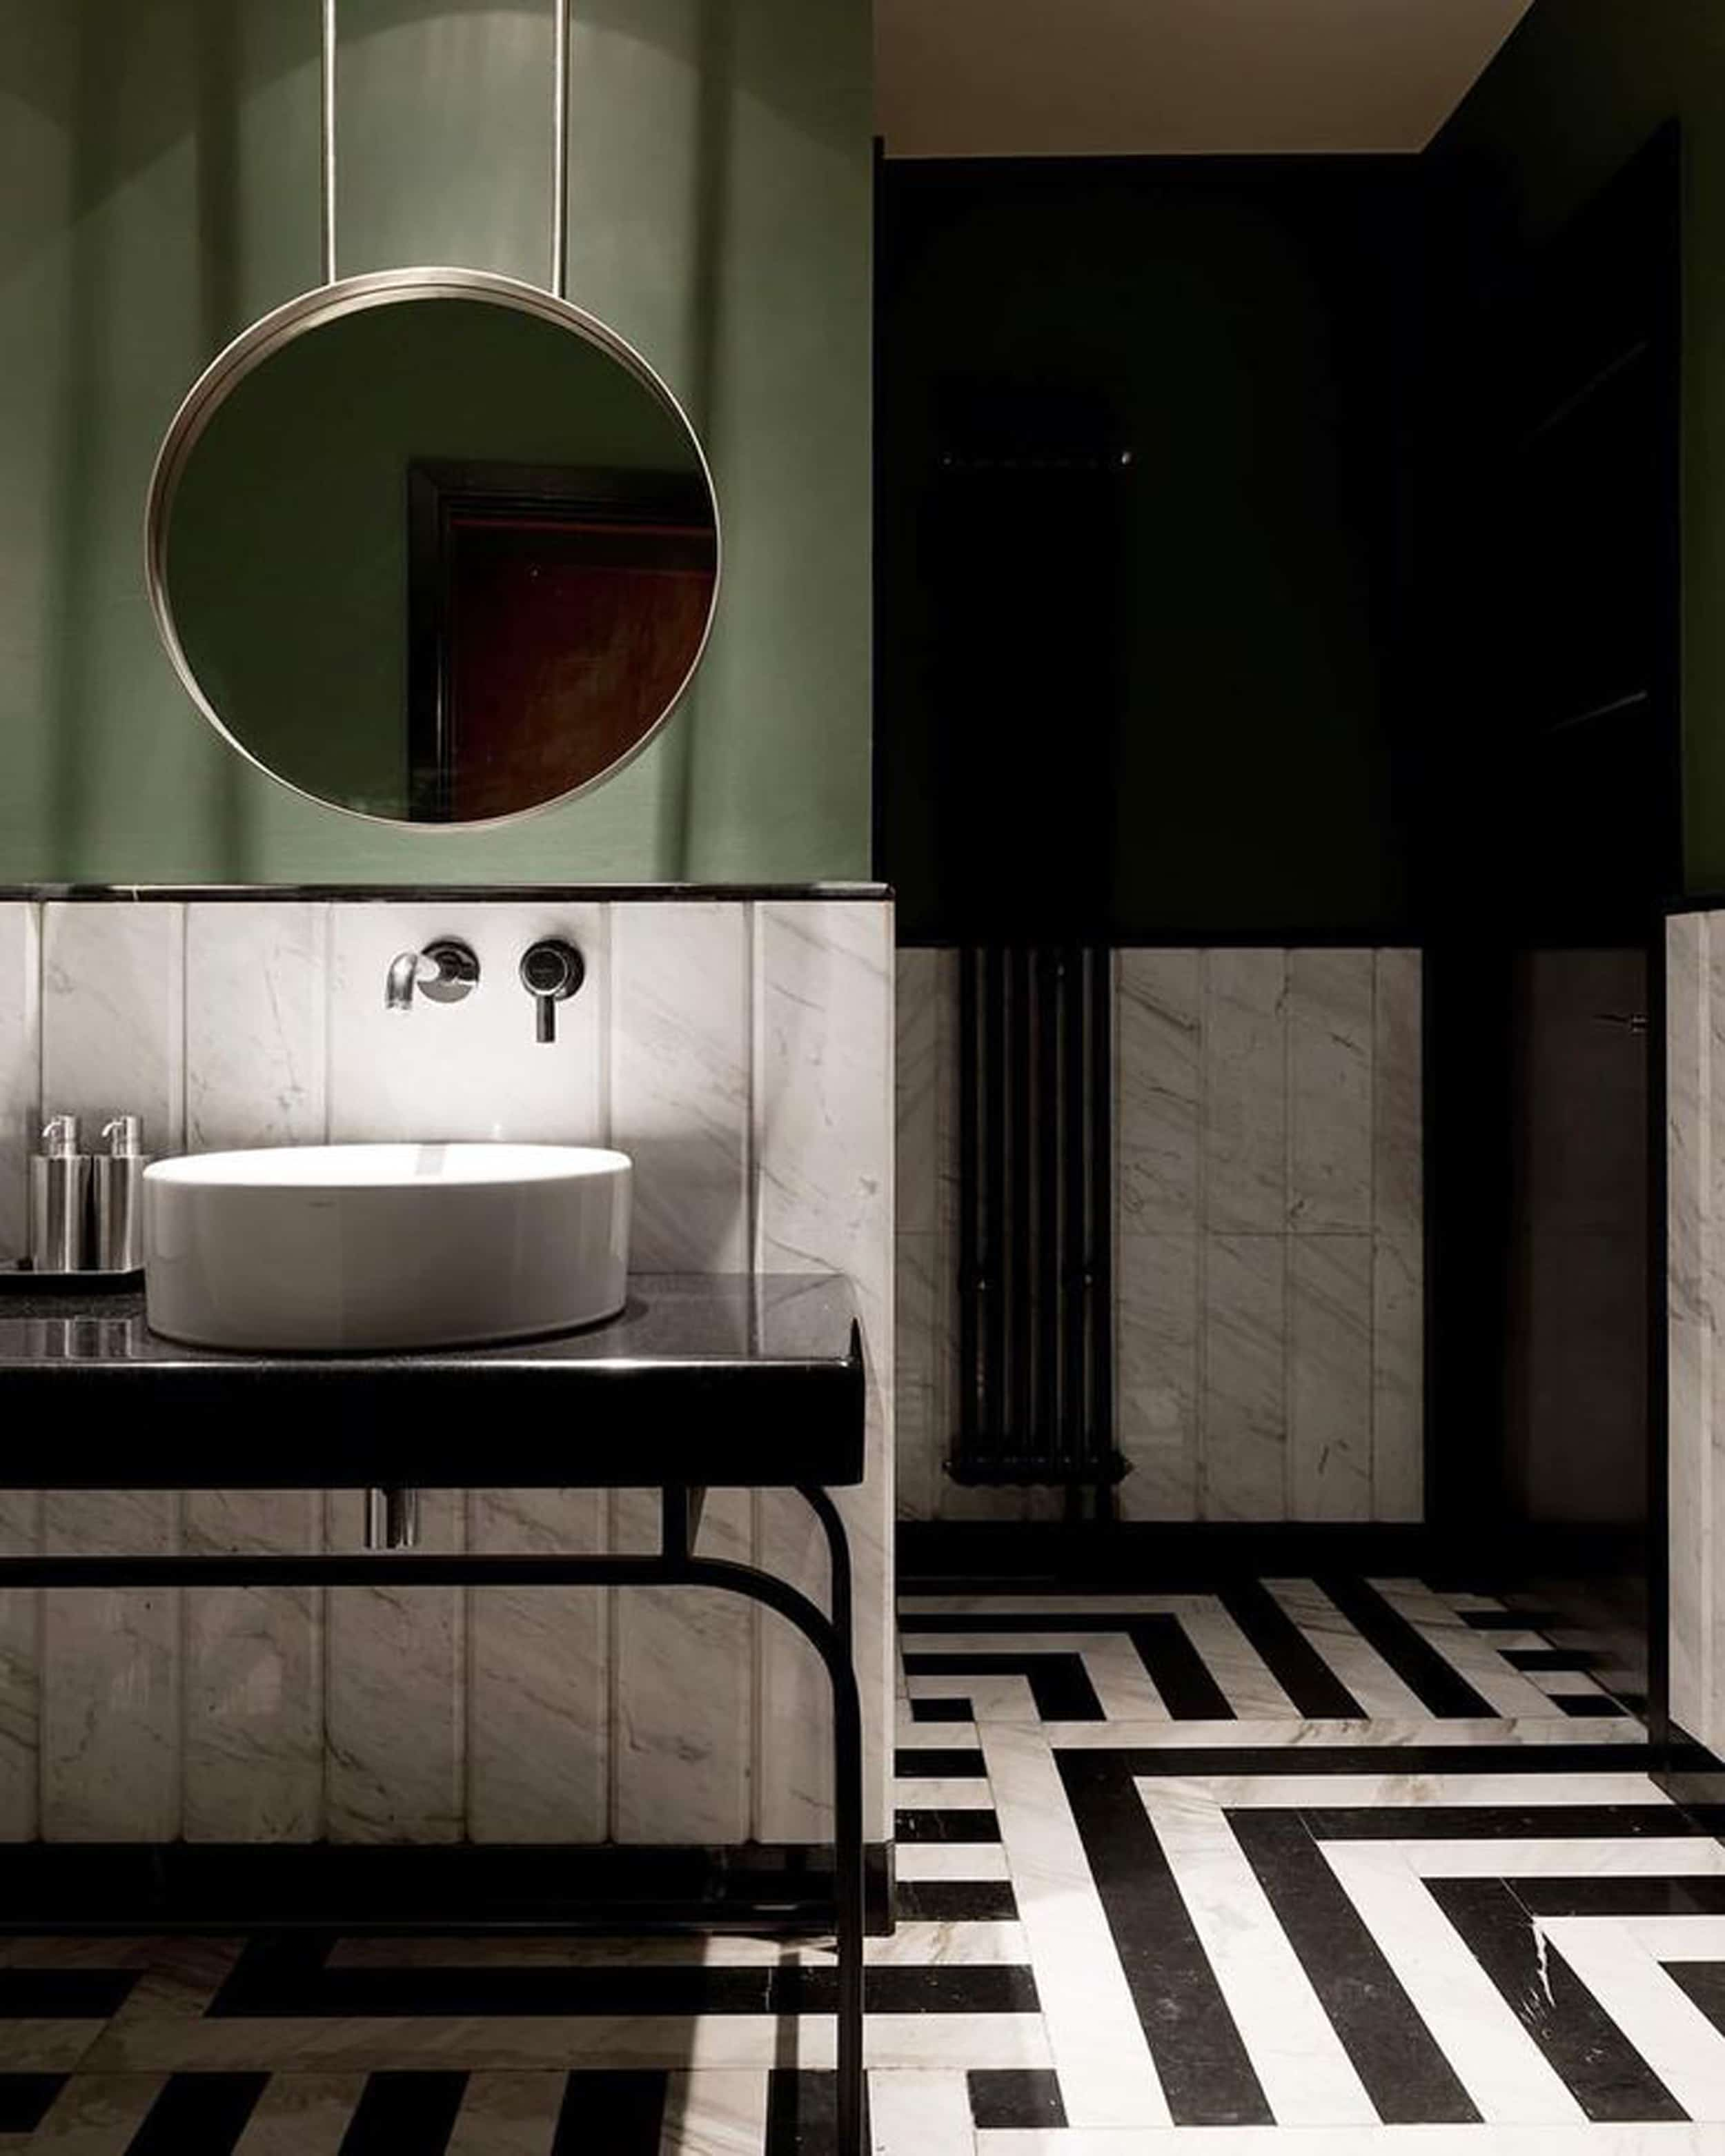 green bathroom modern black and white tile floors